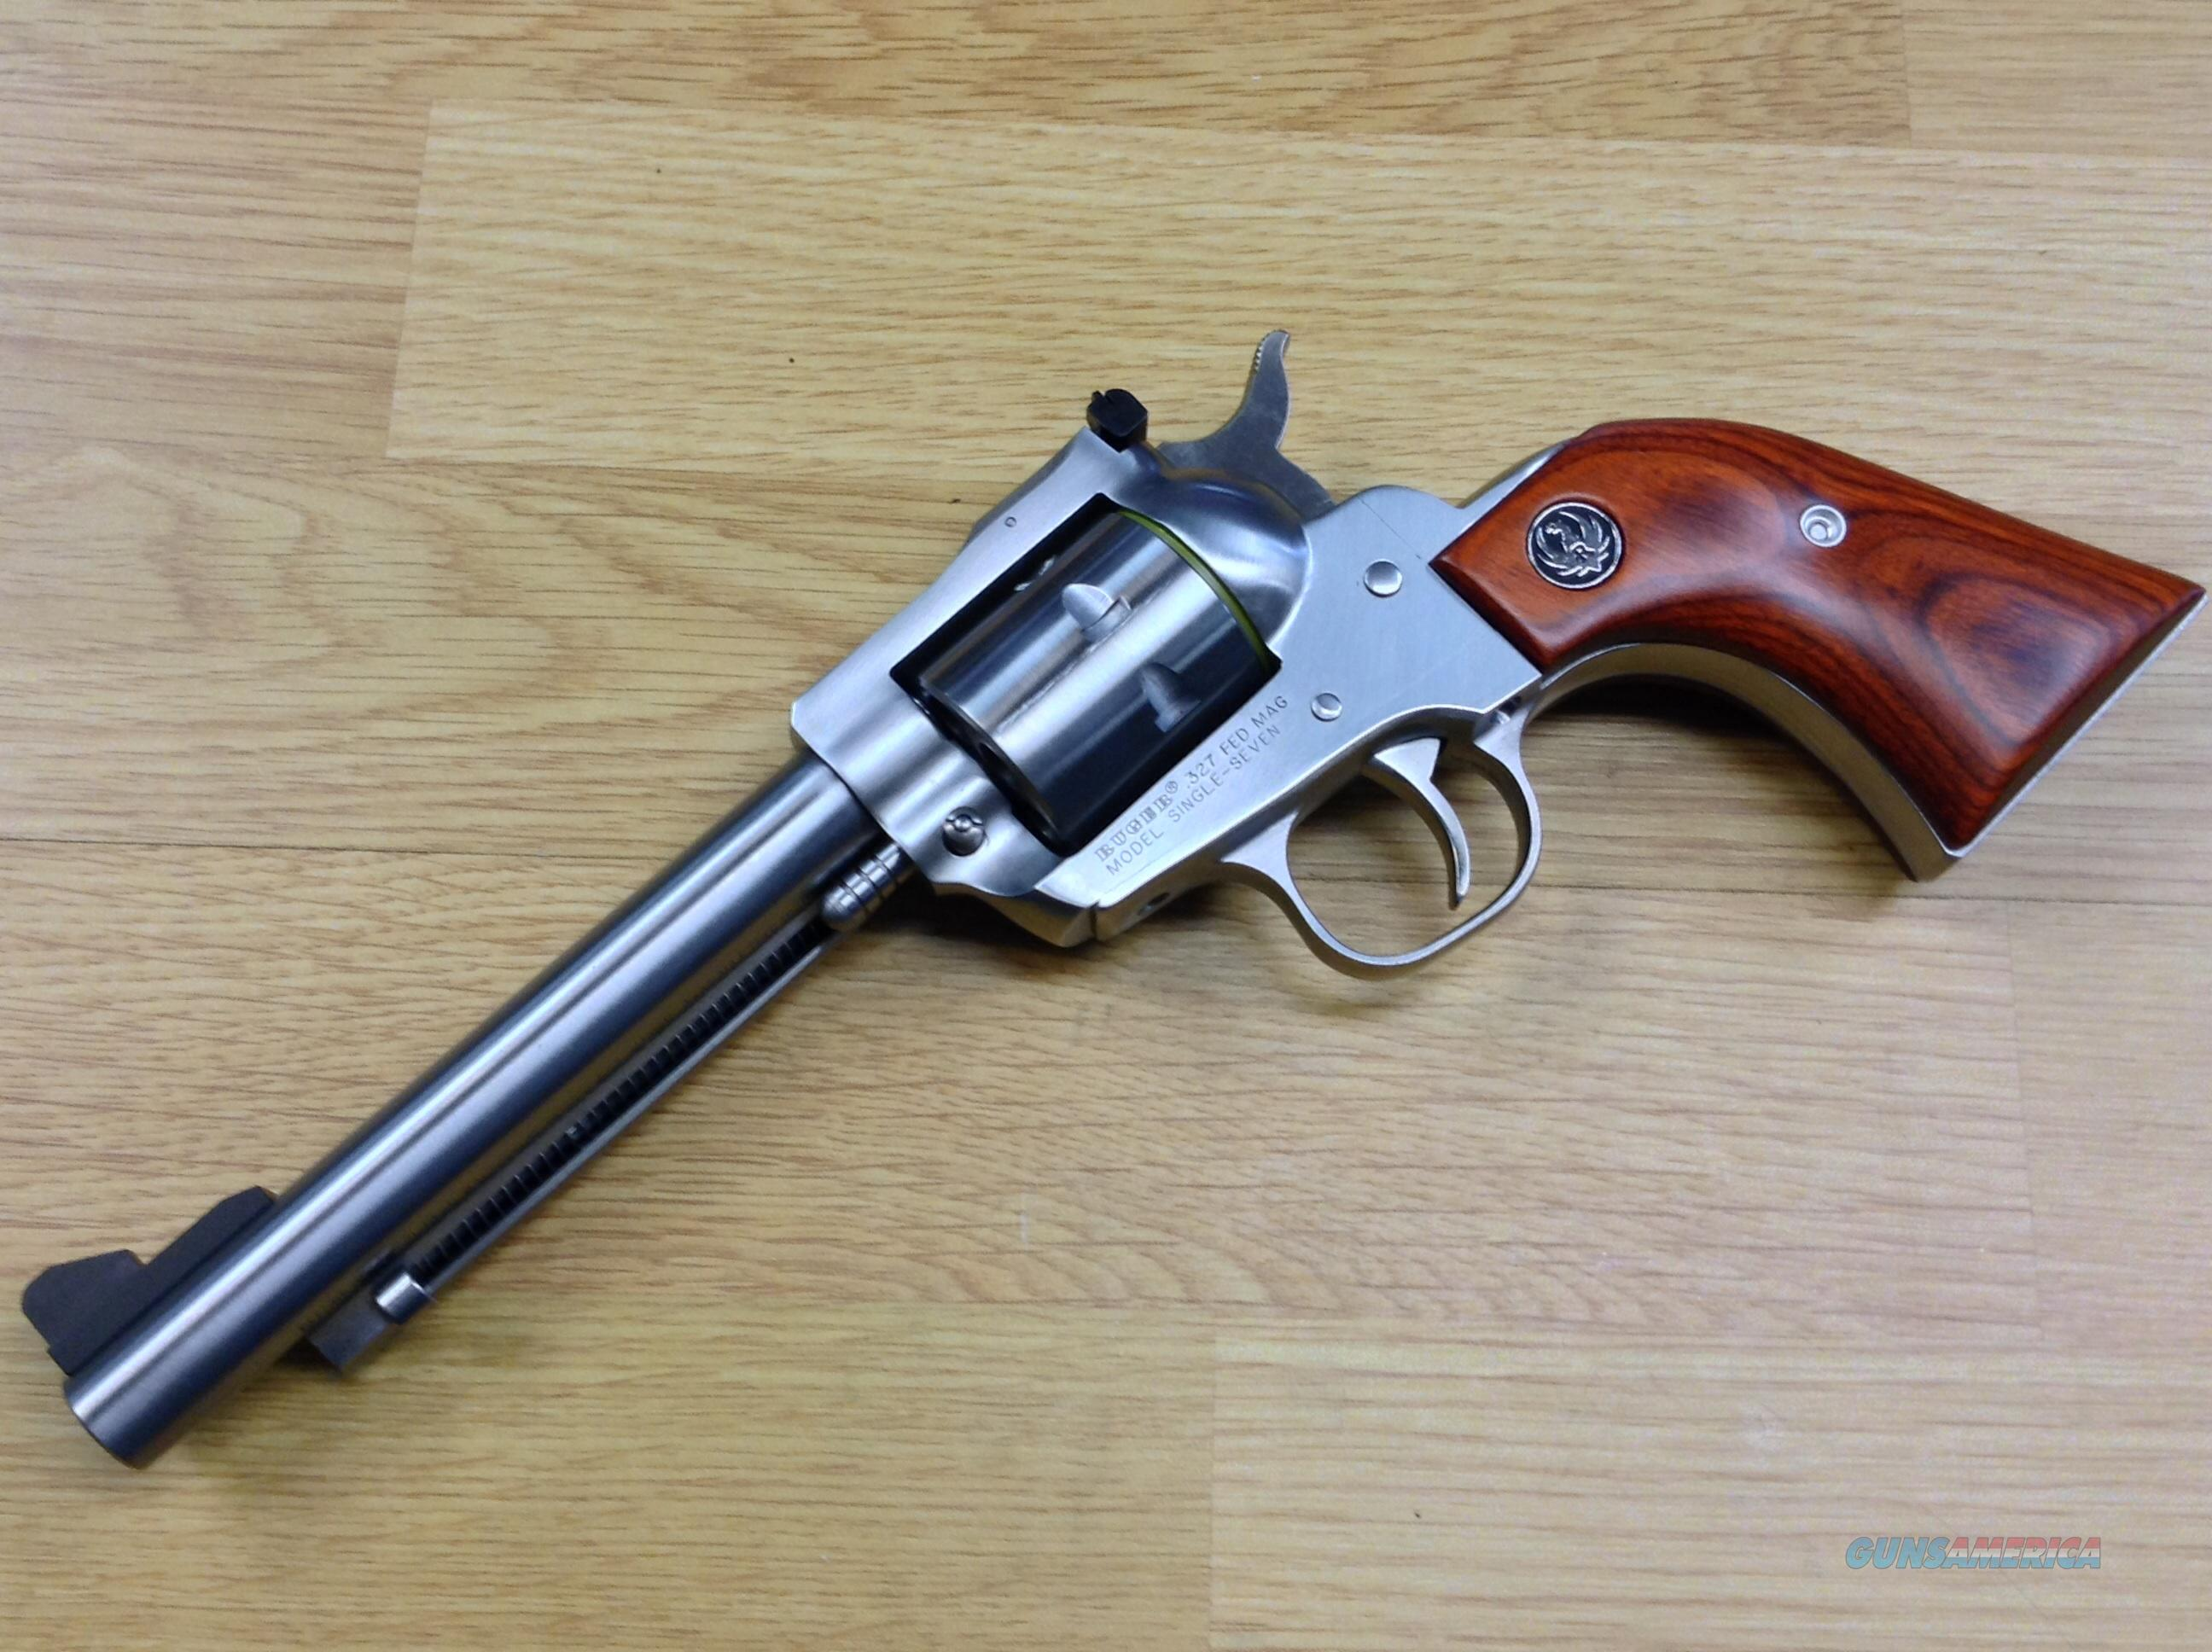 Ruger Single Seven, 327 Federal, 7 shot  Guns > Pistols > Ruger Single Action Revolvers > Single Six Type